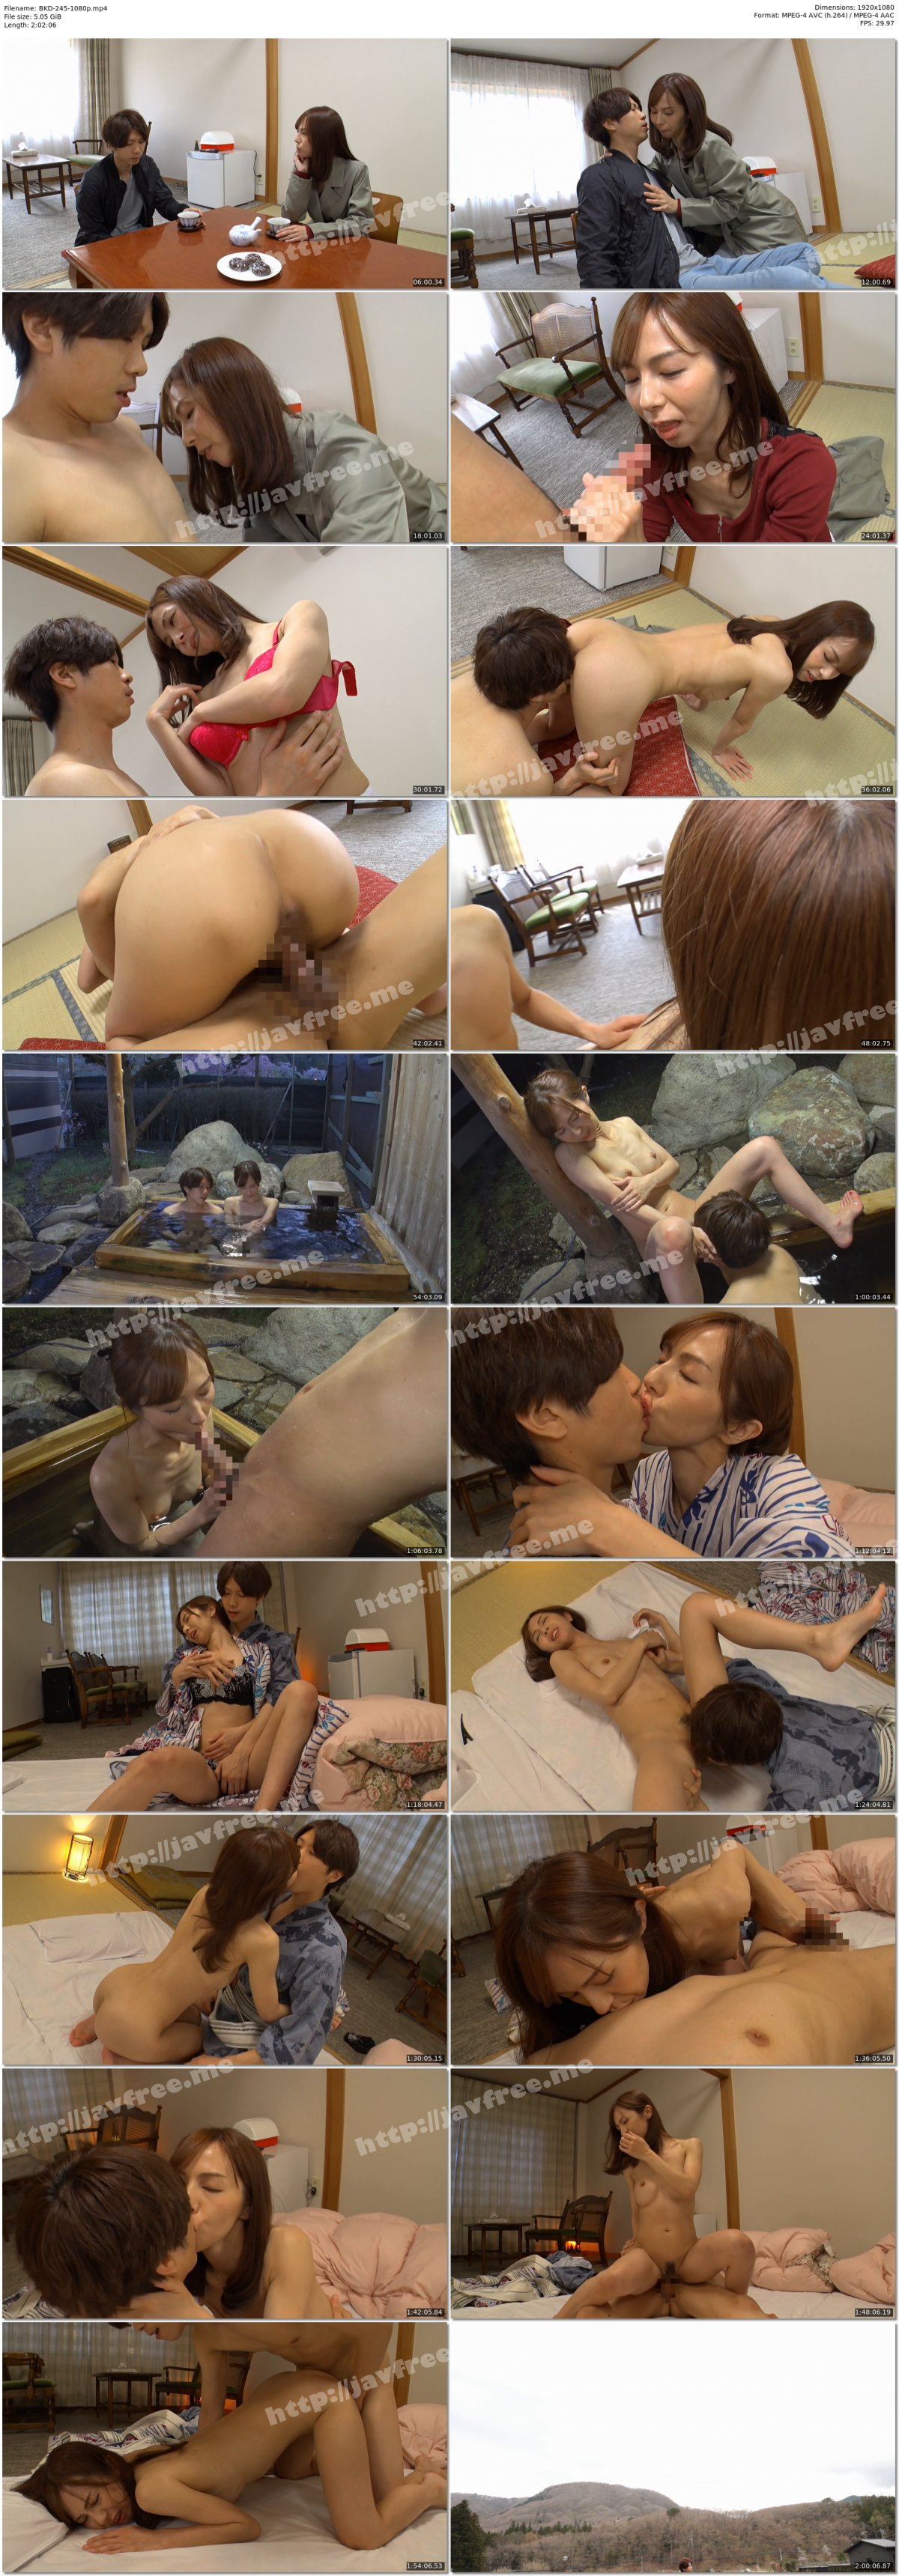 [HD][OREC-566] まや - image BKD-245-1080p on https://javfree.me